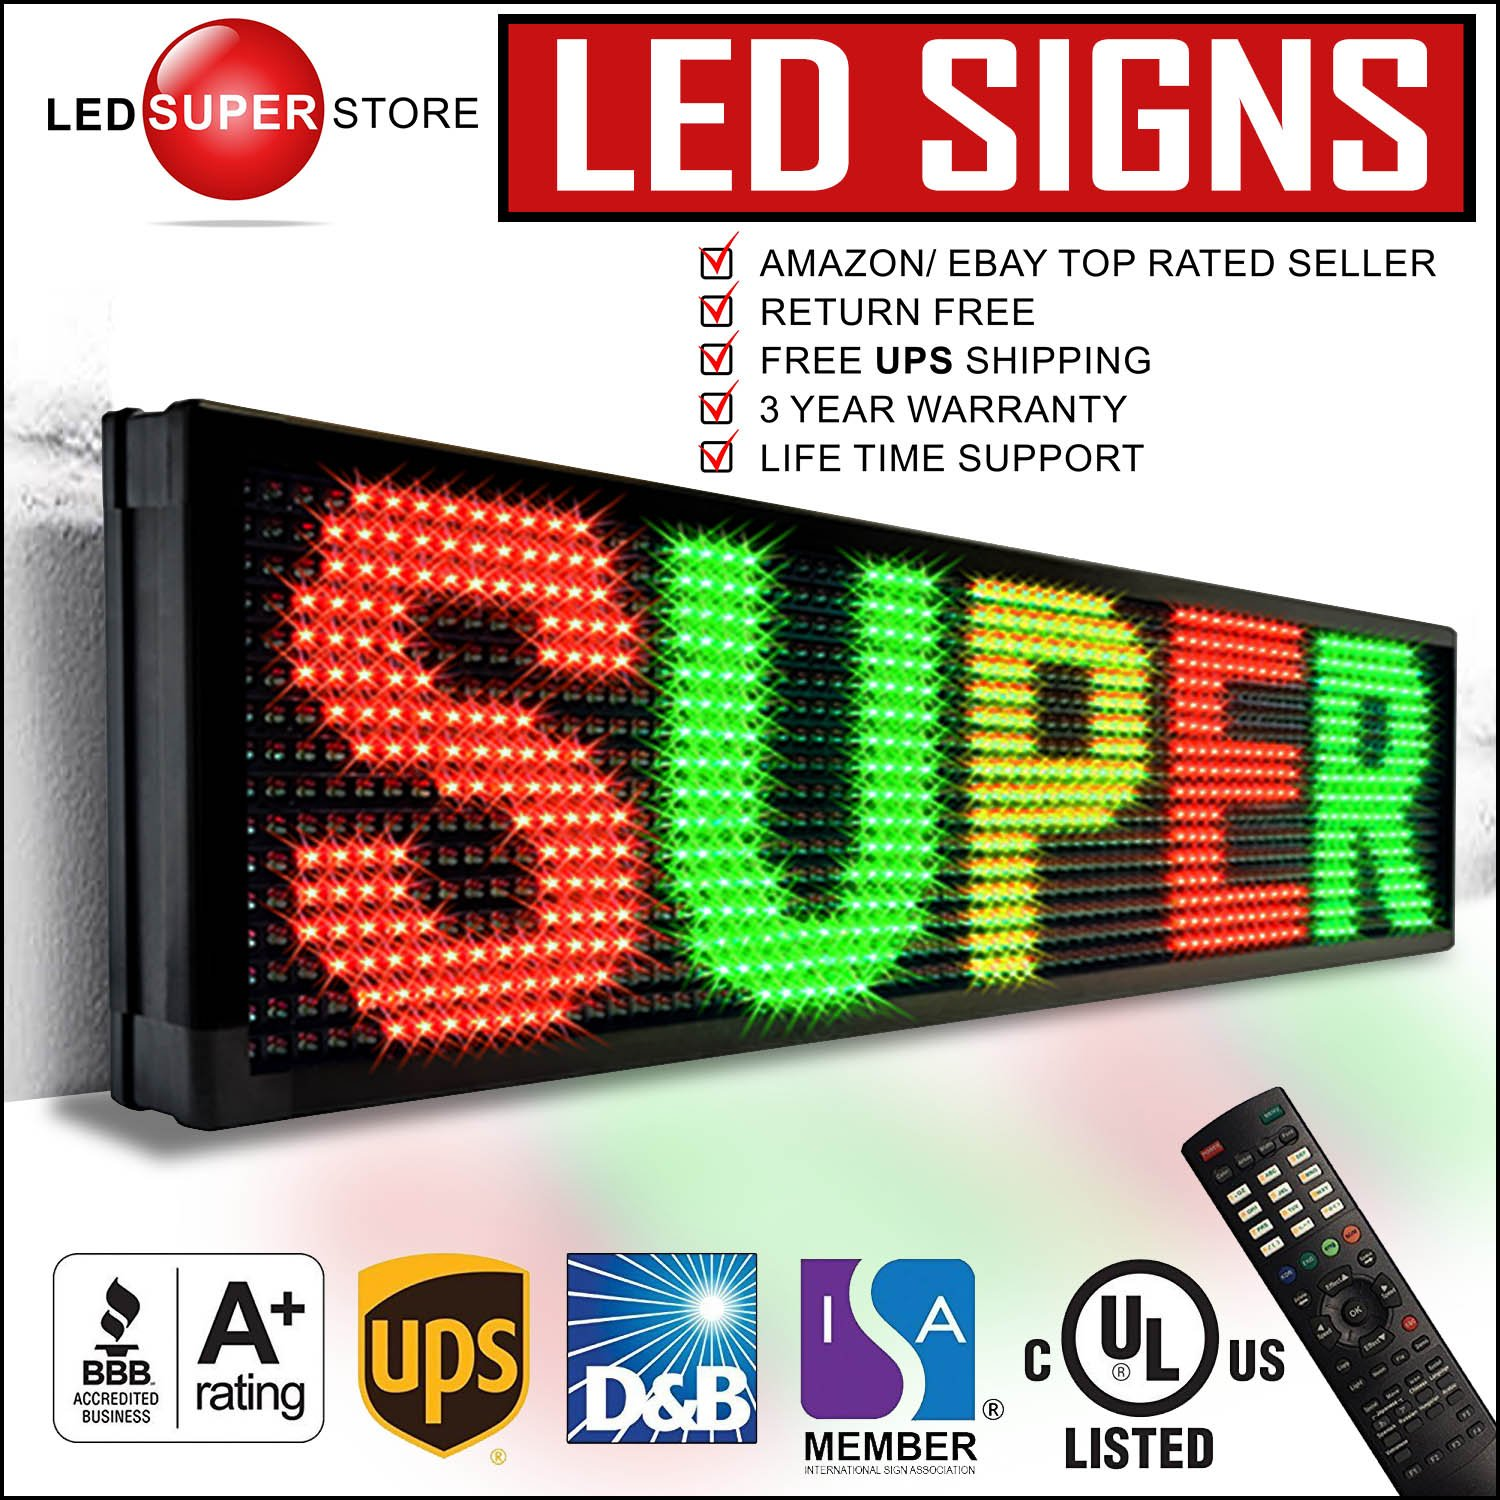 LED Super Store Signs 3 Color (RGY) 19'' x 69'' - Programmable Scrolling Display, Storefront Message Board - Industrial Grade Business Tools, EMC